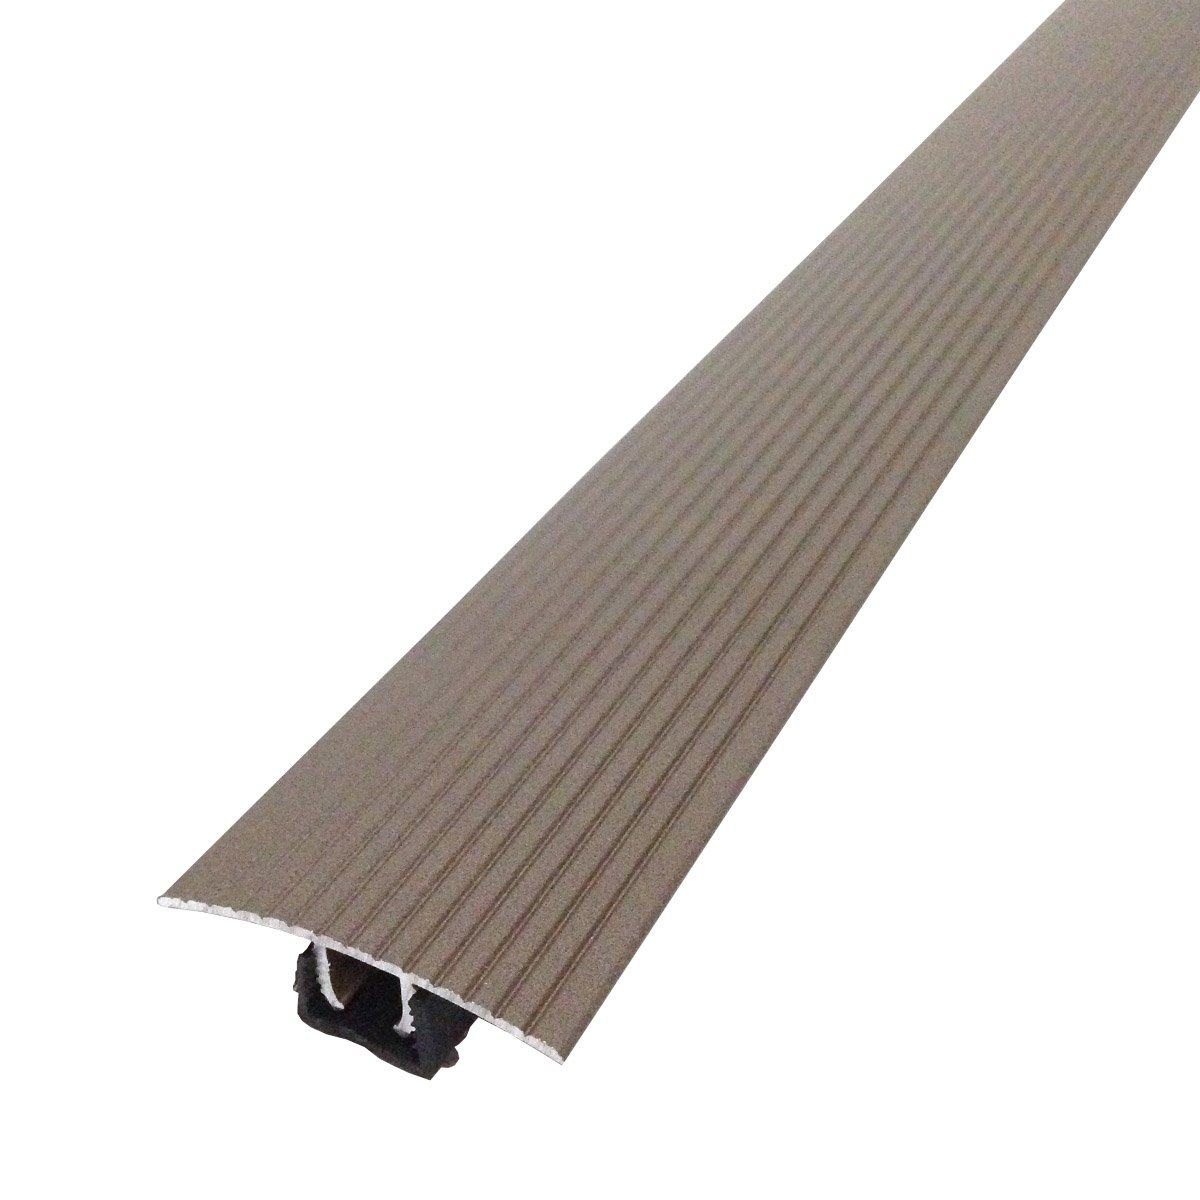 M-D Building Products Cinch T-Molding w/SnapTrack (Fluted) 36'' Spice Spice